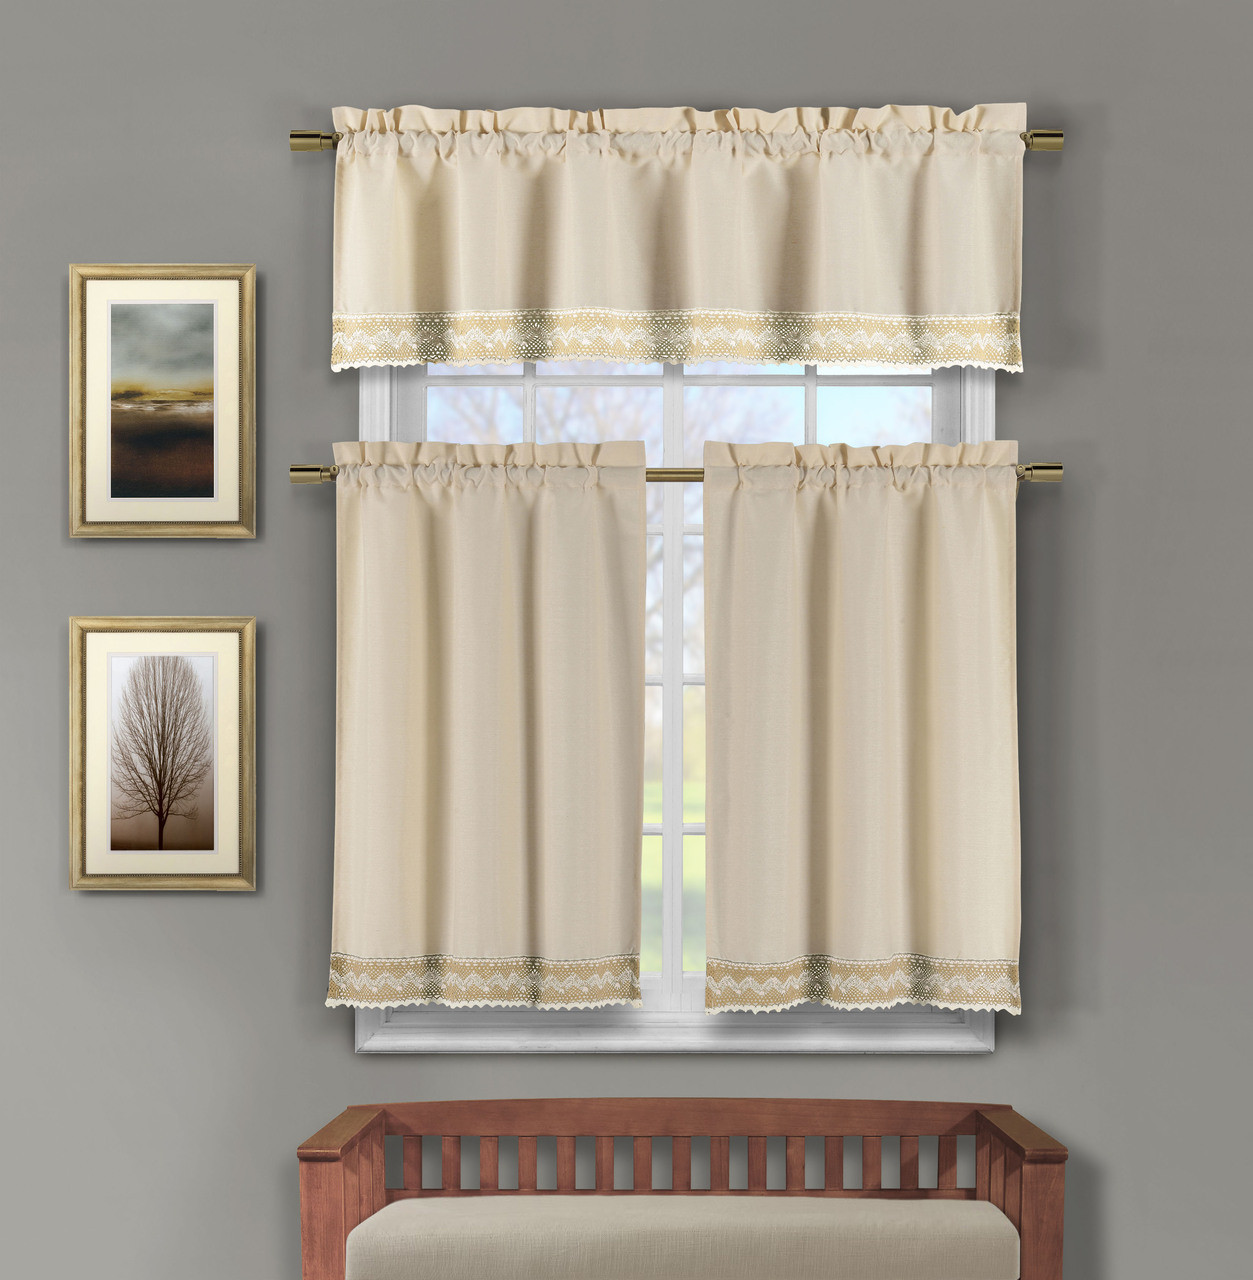 3 Pc Linen Kitchen Window Curtain Set Crochet Taupe And Linen Accent Free Hanger